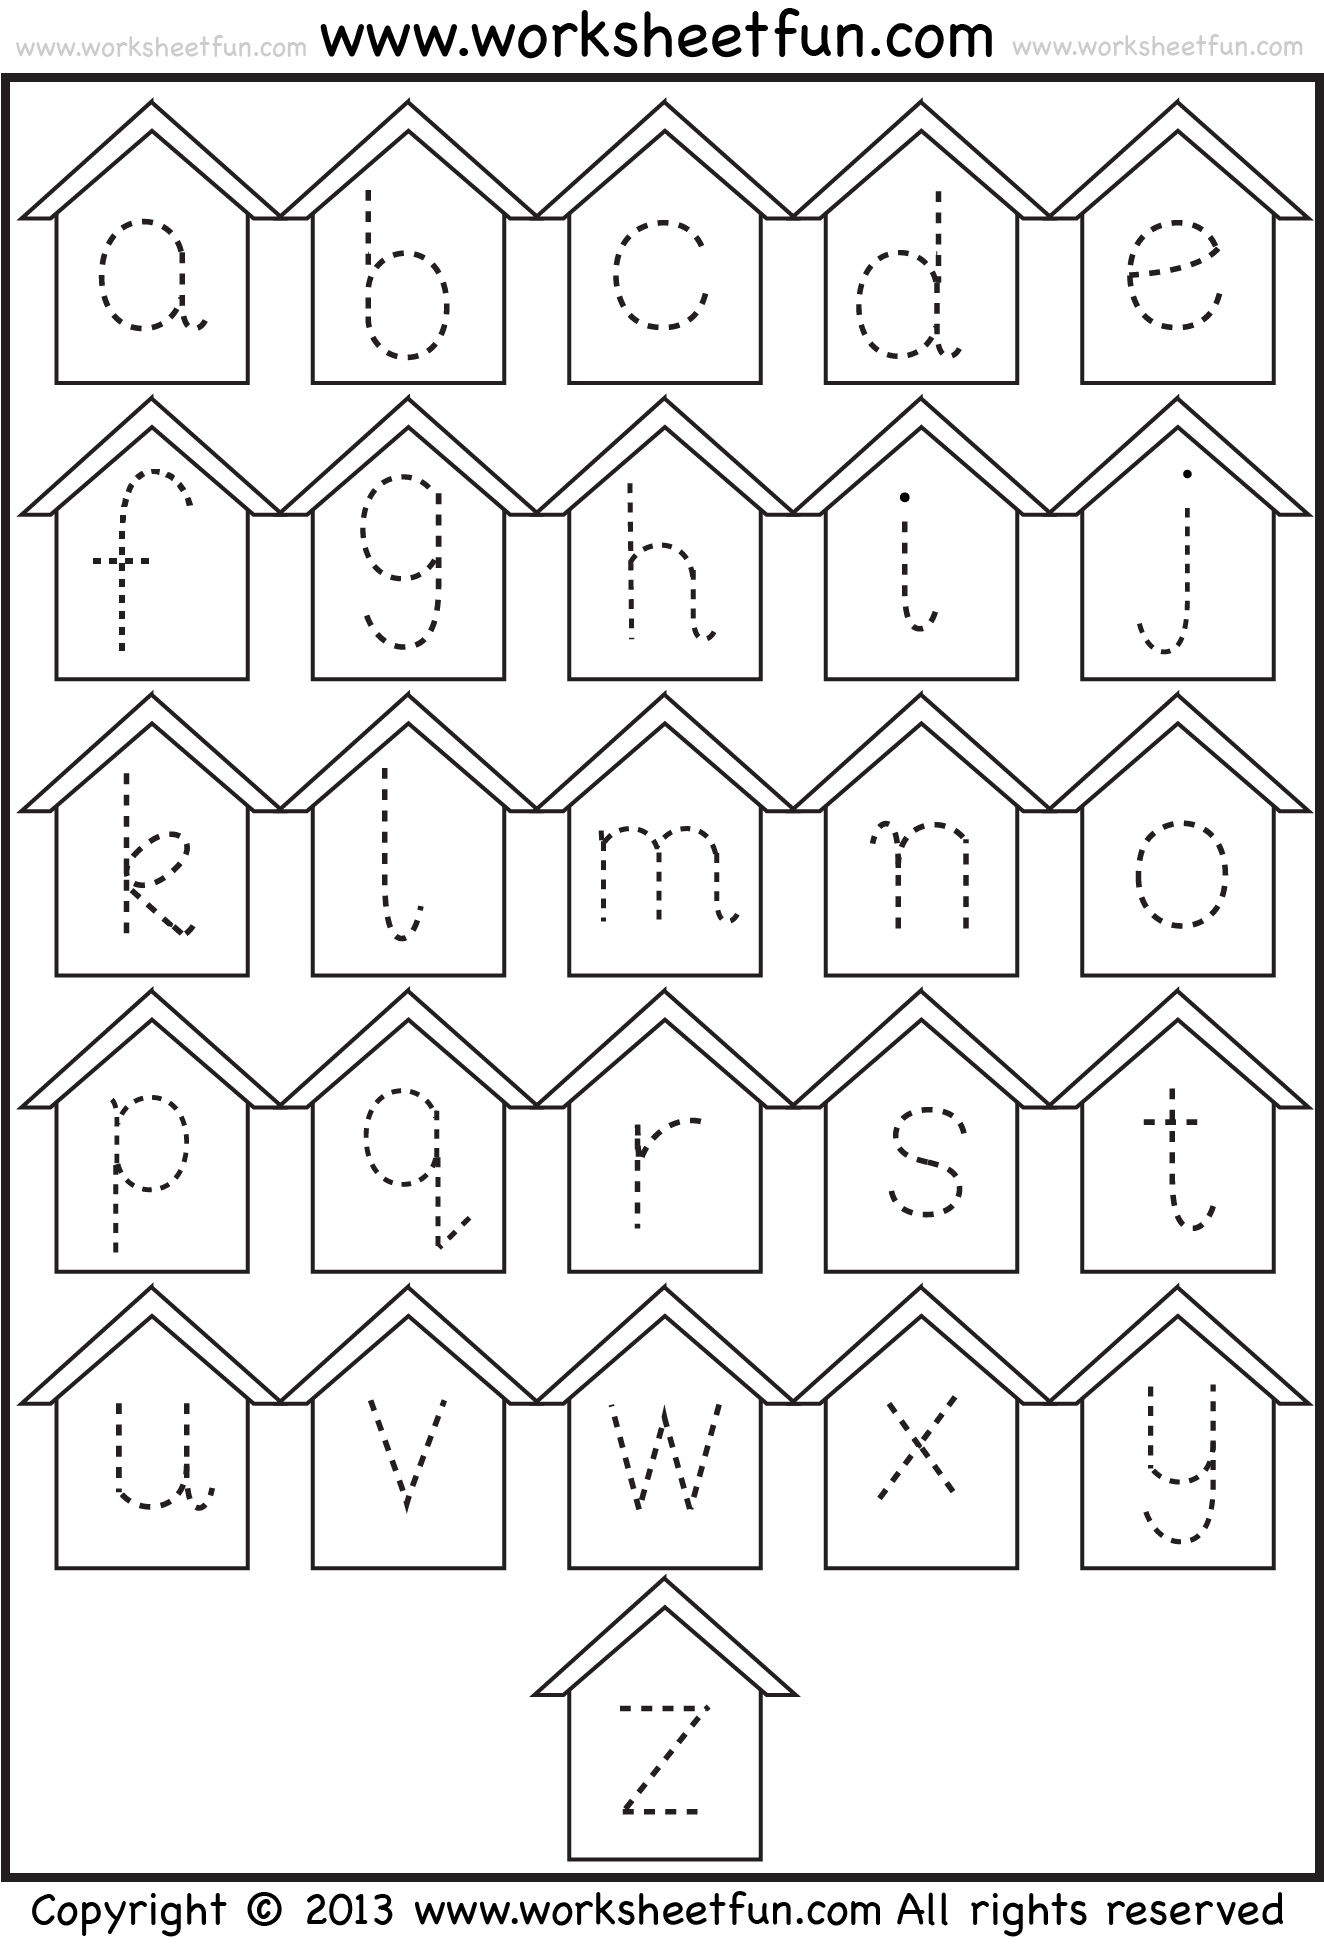 Lower Case Letter Tracing Worksheets